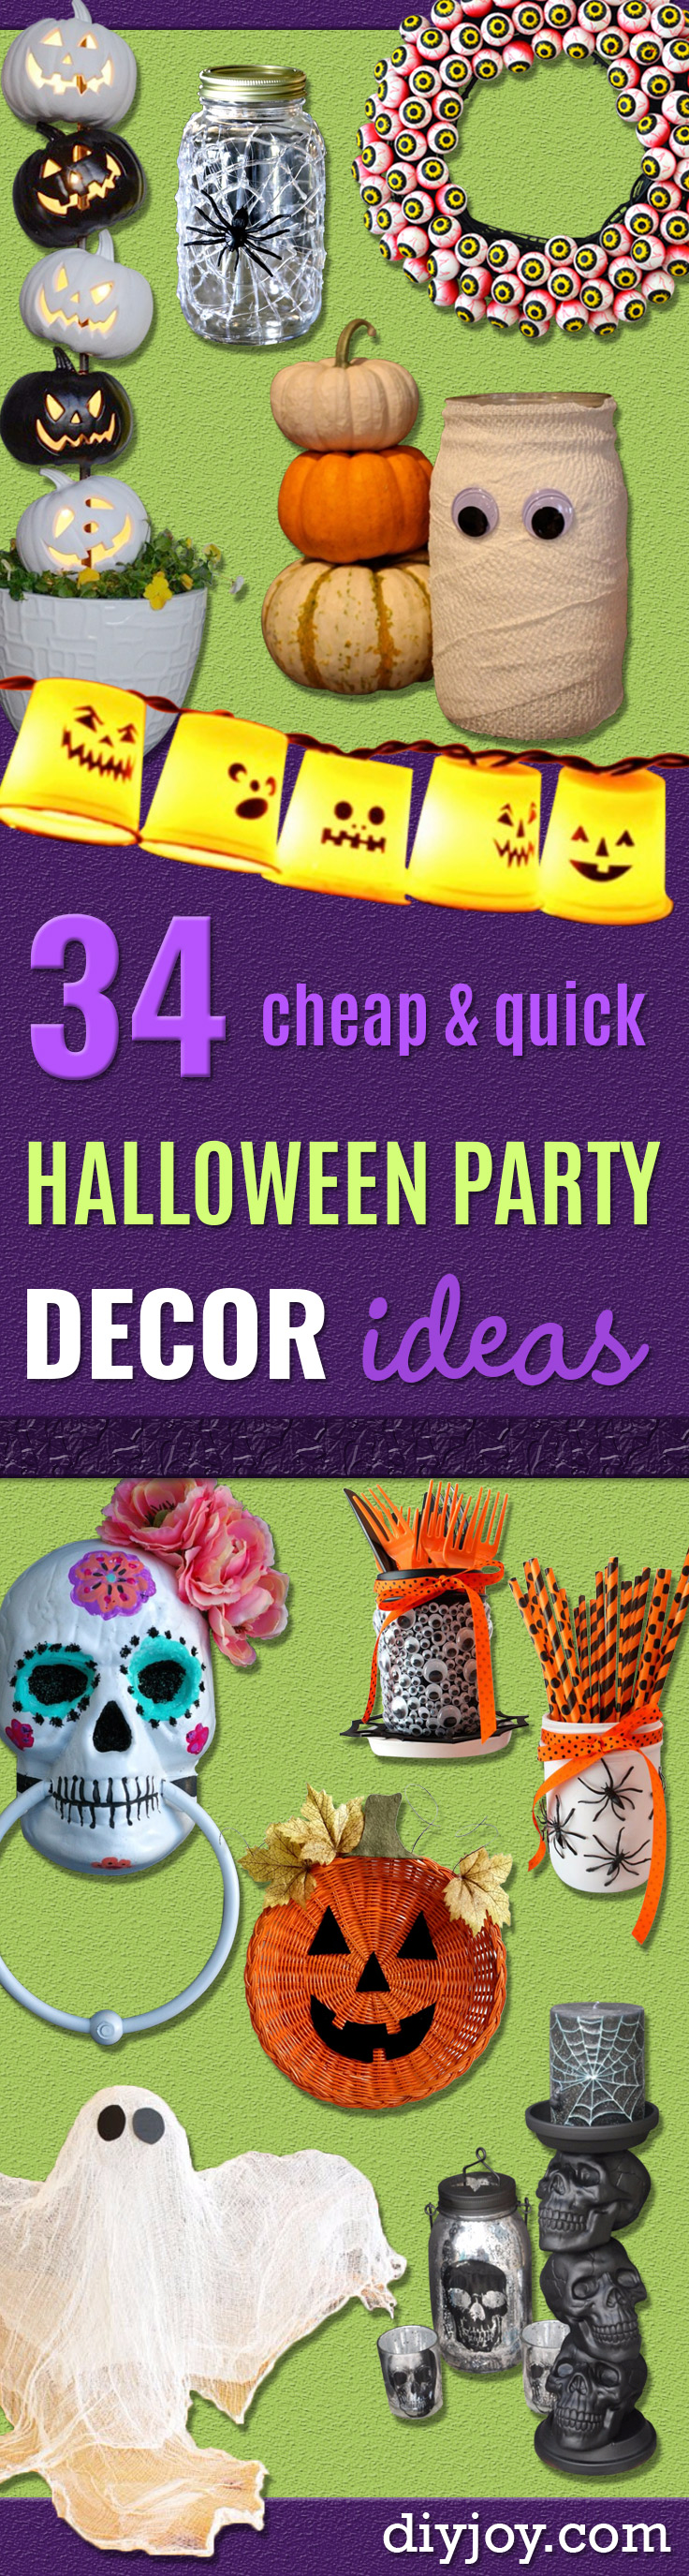 DIY Halloween Decorations - Best Easy, Cheap and Quick Halloween Decor Ideas and Crafts for Inside and Outside Your Home - Scary, Creepy Cute and Fun Outdoor Project Tutorials http://diyjoy.com/cheap-diy-halloween-decorations